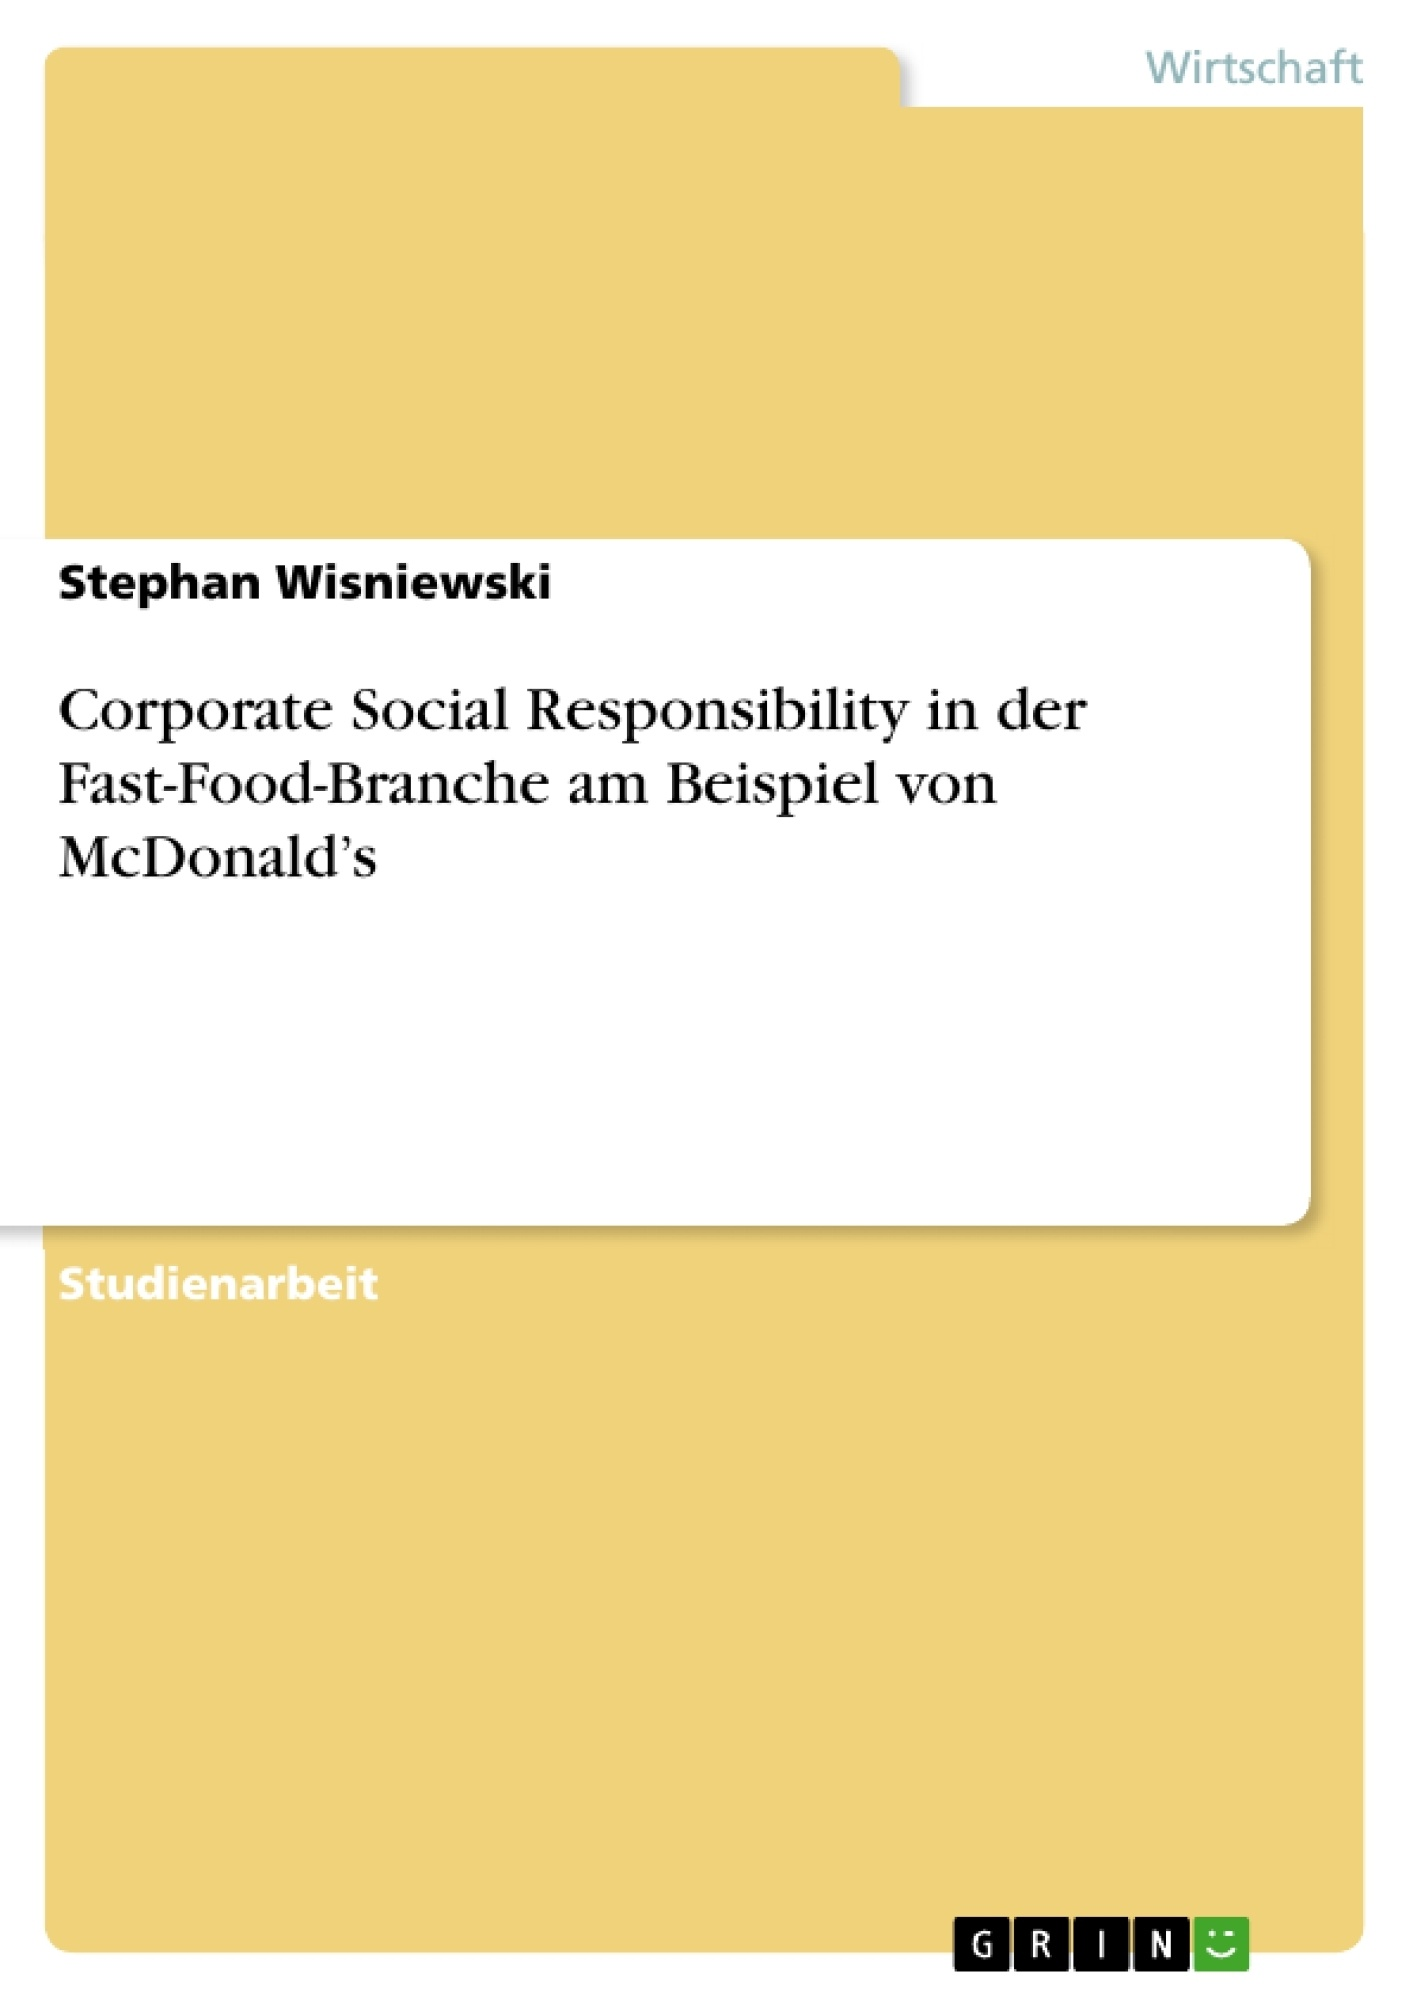 Titel: Corporate Social Responsibility in der Fast-Food-Branche am Beispiel von McDonald's